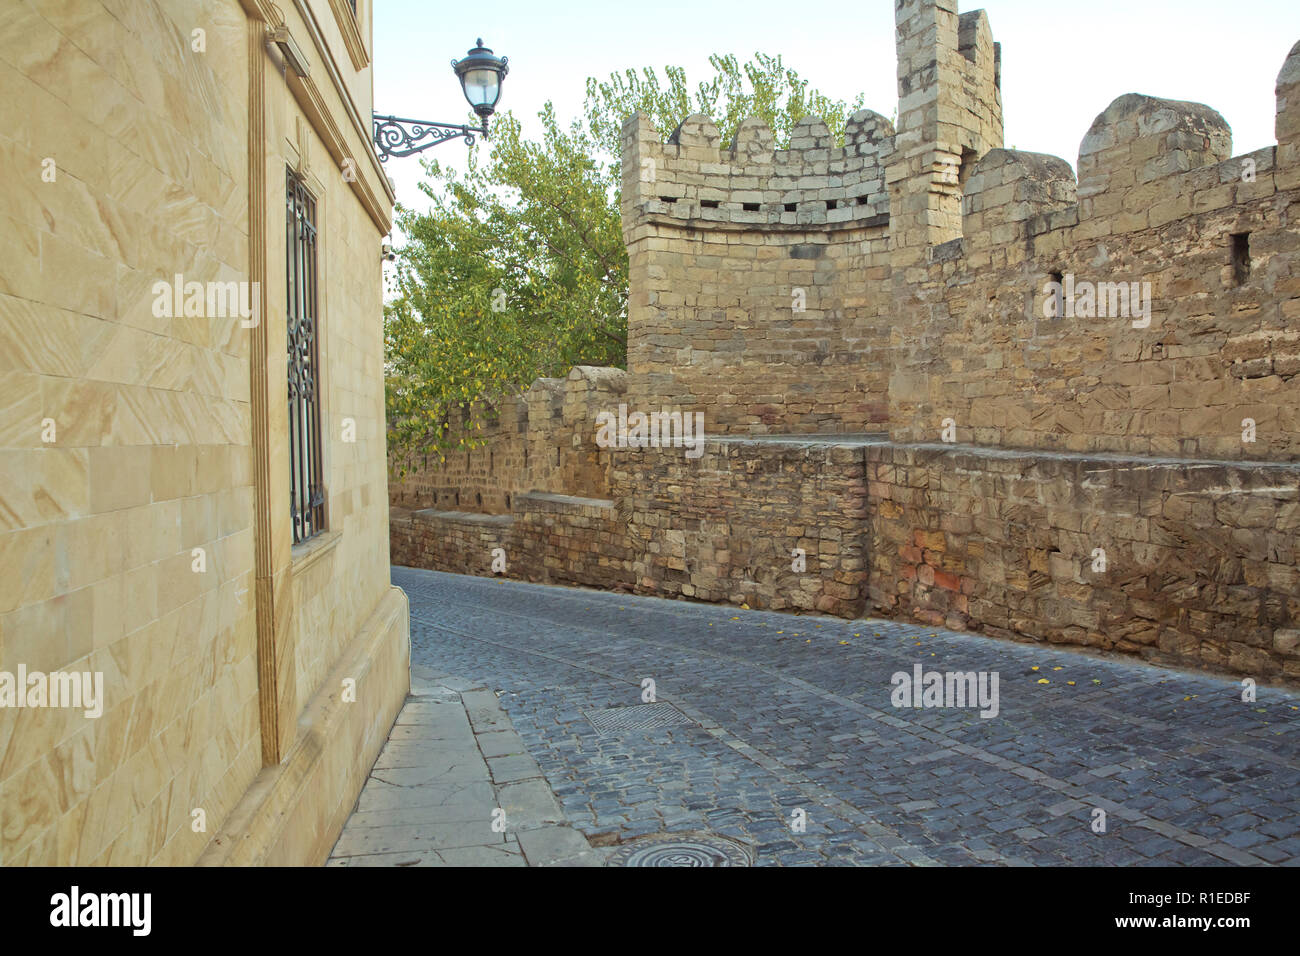 Azerbaijan . Gate of the old fortress, entrance to Baku old town. Baku, Azerbaijan. Walls of the Old City in Baku . Icheri Sheher is a UNESCO World He - Stock Image